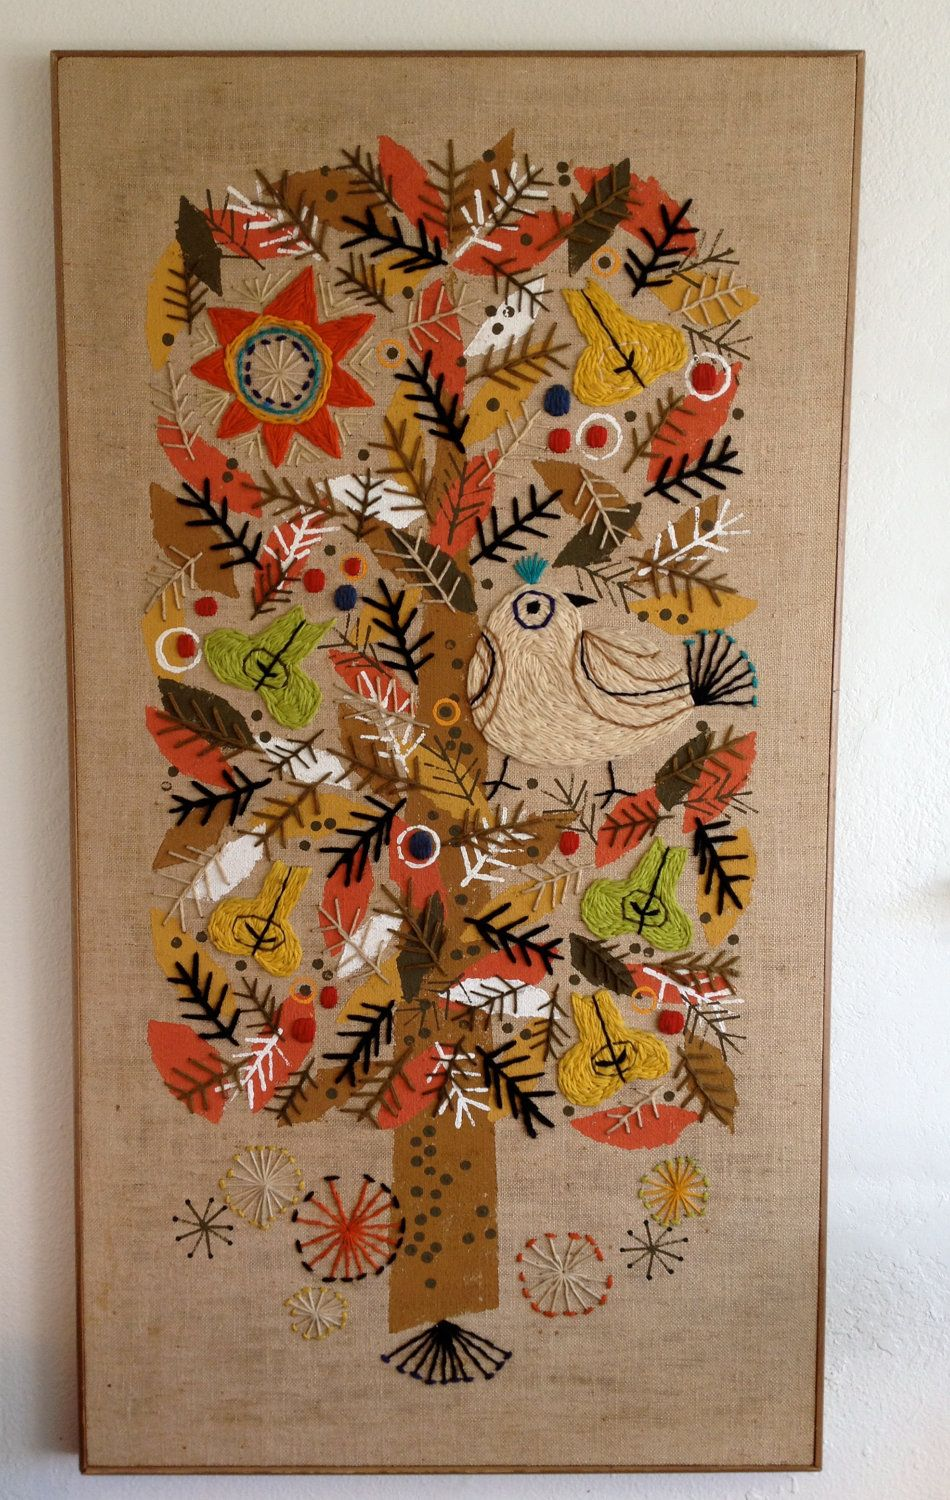 Vintage Crewel Art Wall Hanging Crewel Embroidery